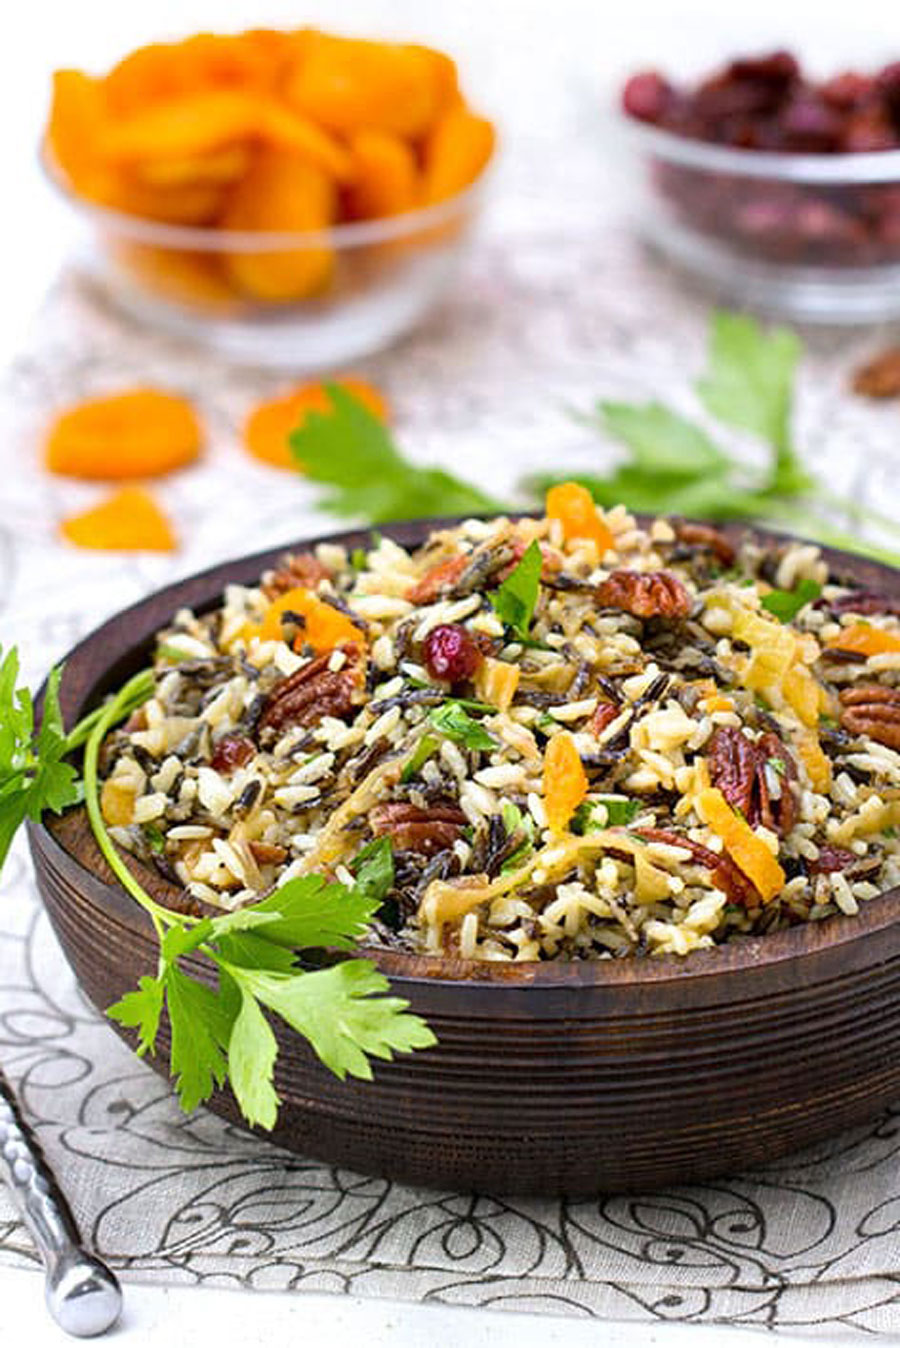 wild rice salad in a brown wooden bowl with a small bowl of dried apricots and a small bowl of dried cranberries in the background